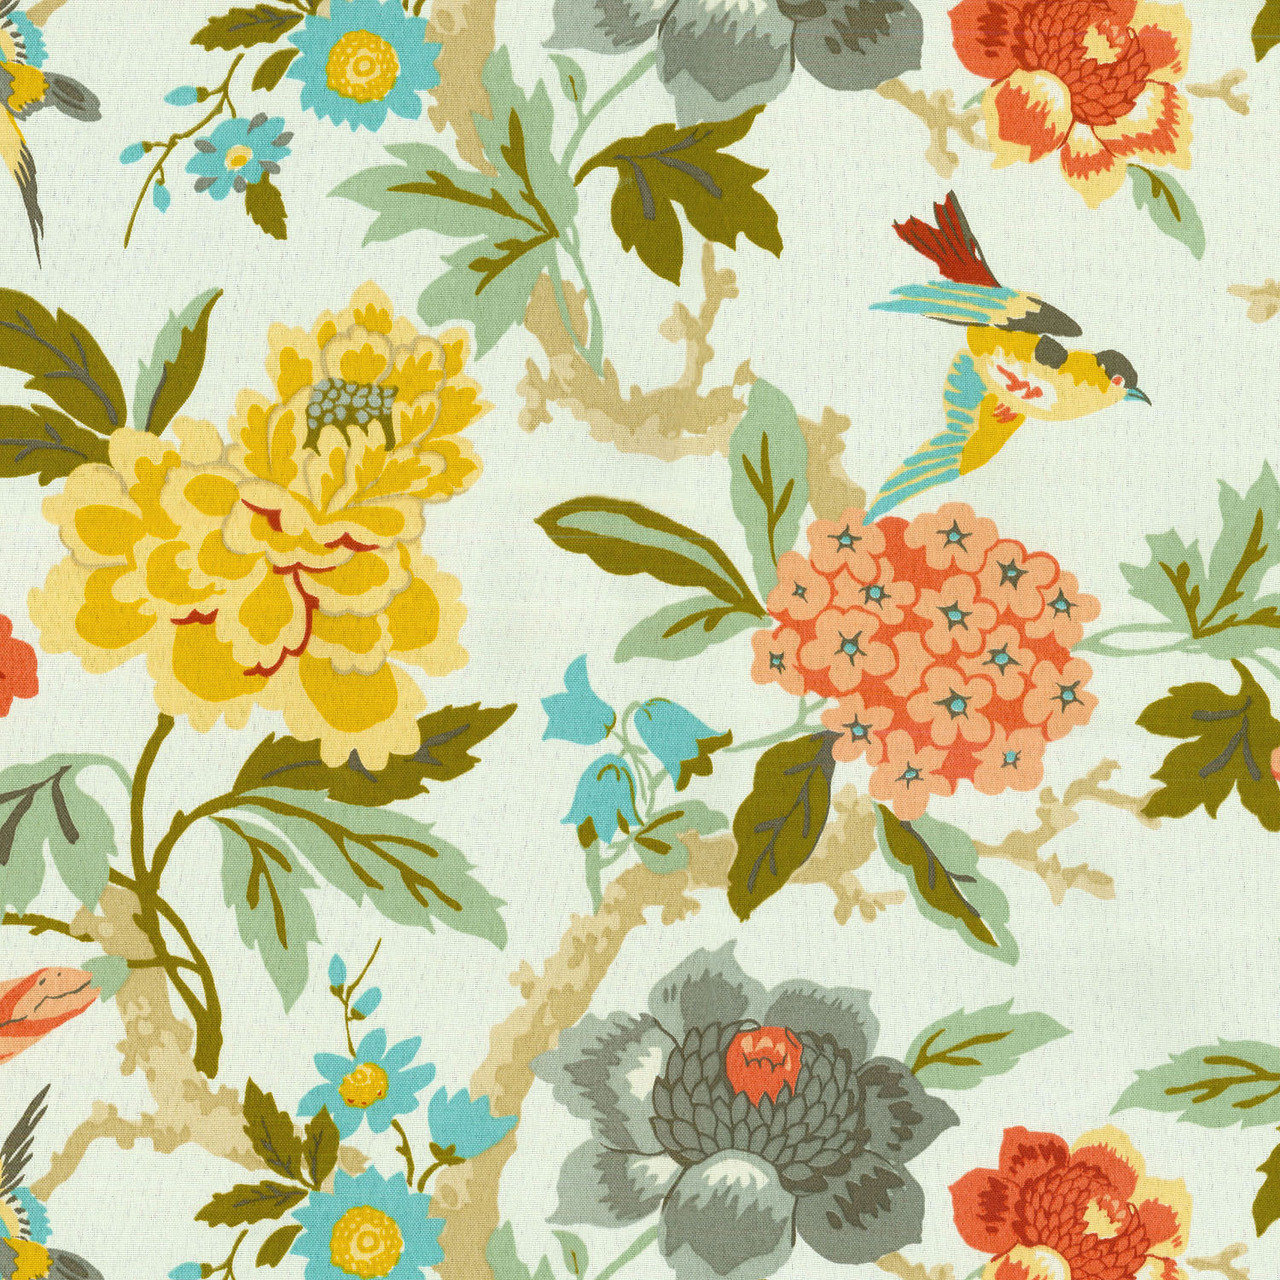 Waverly Fabric Sns Candid Moment Melon 679831